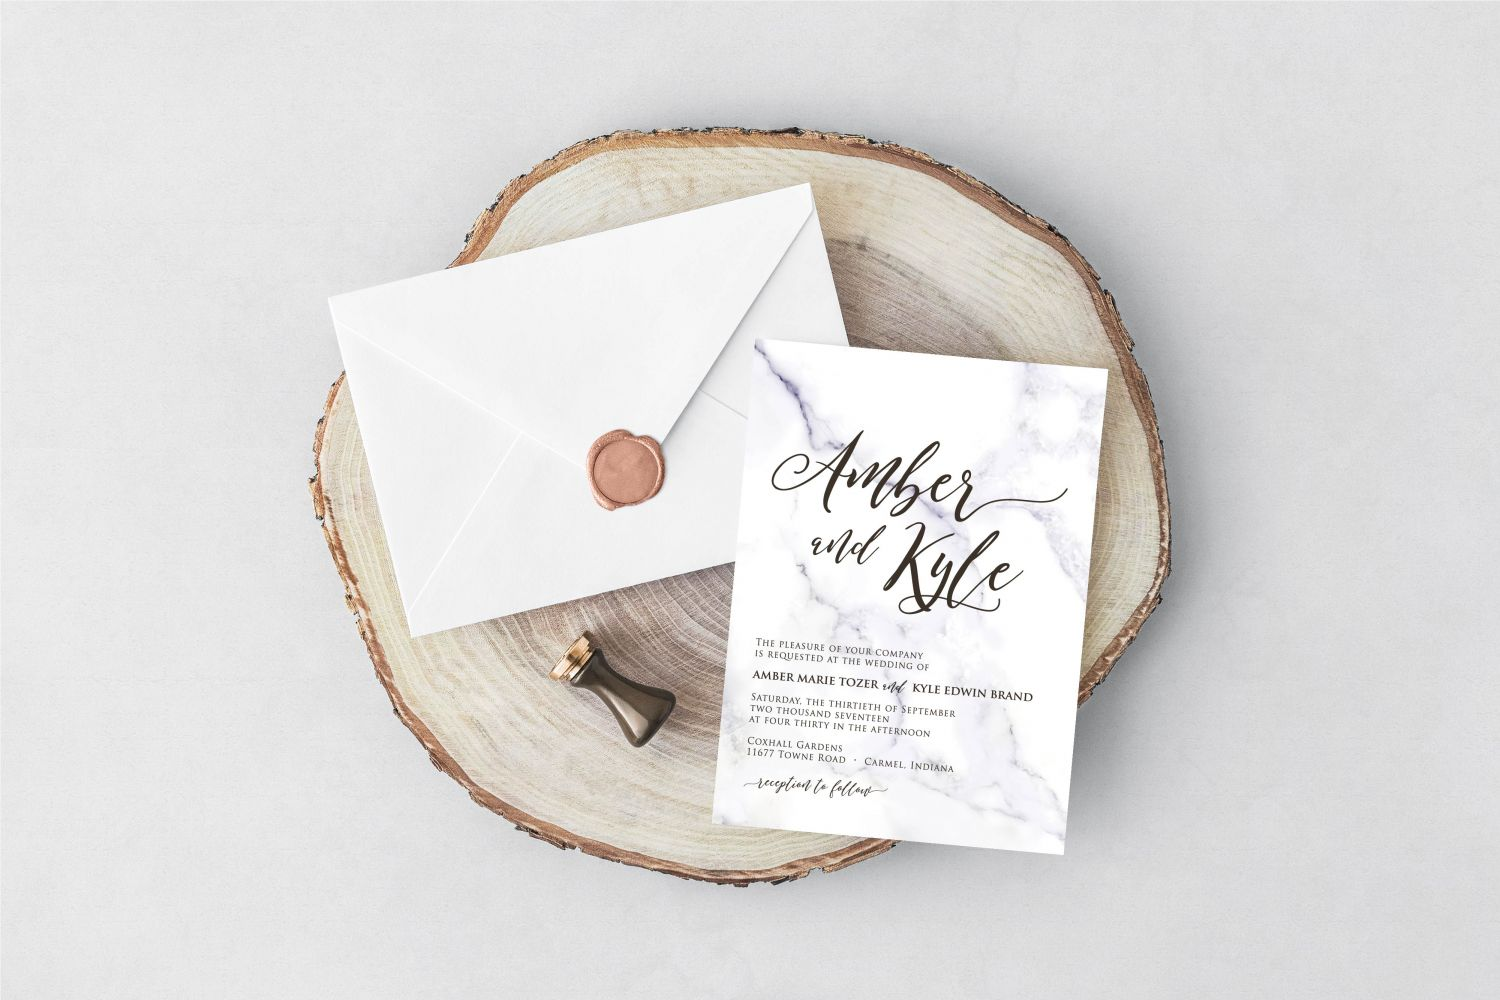 Indianapolis Carmel Westfield Keystone Wedding Stationery Invitation Store